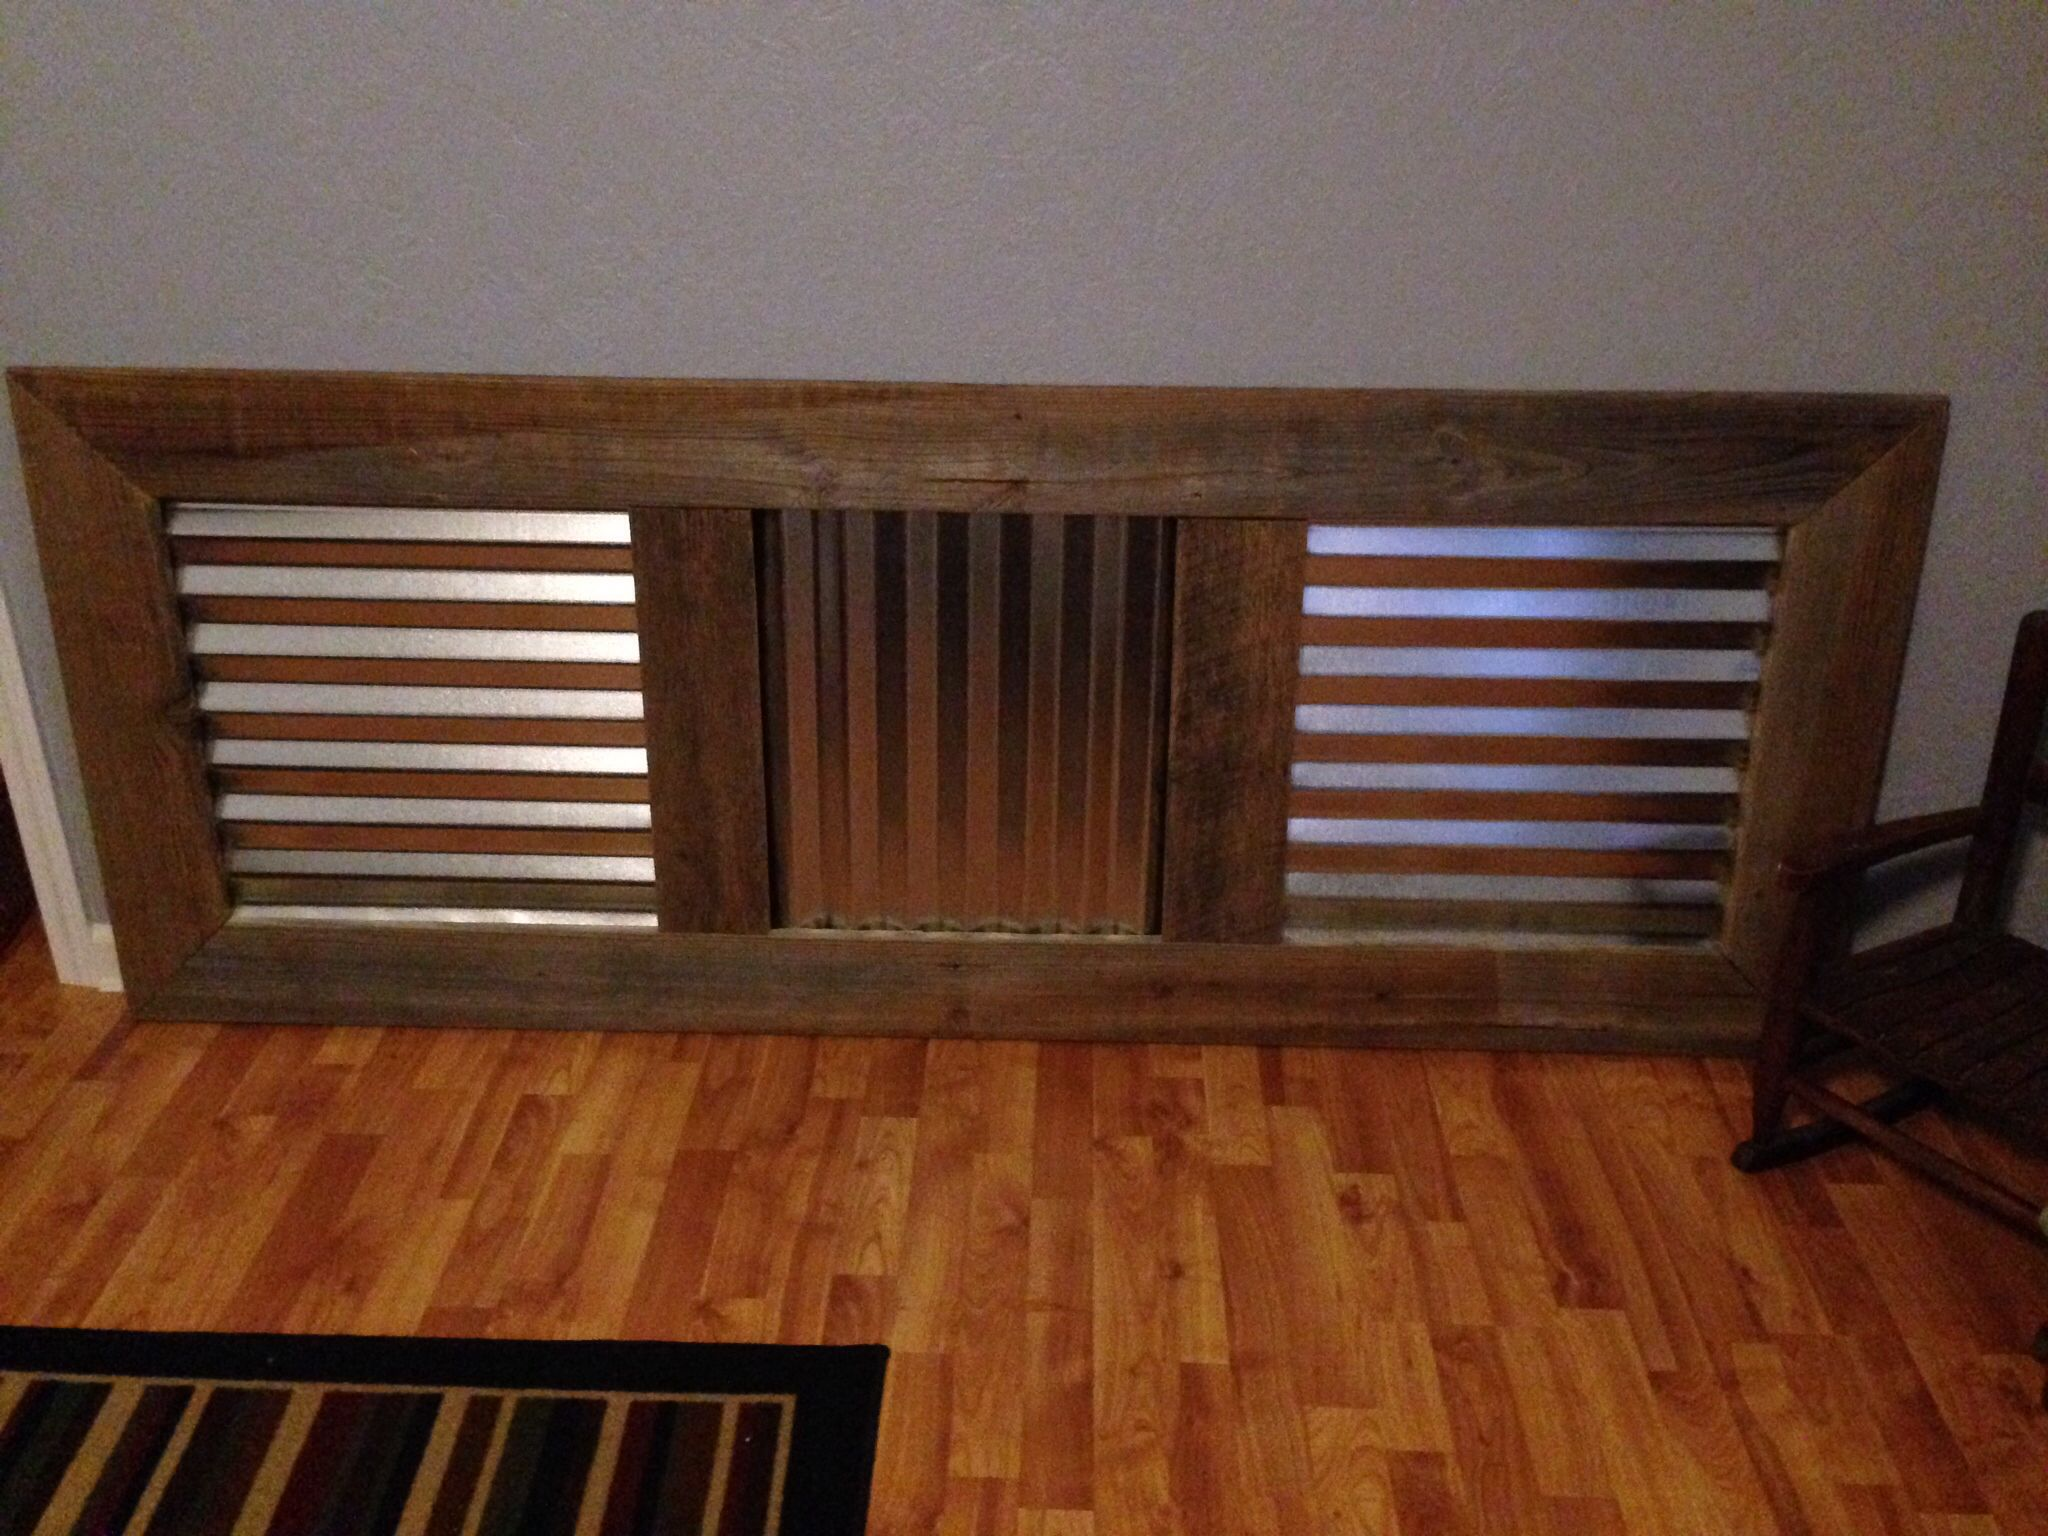 King size headboard made from reclaimed wood and